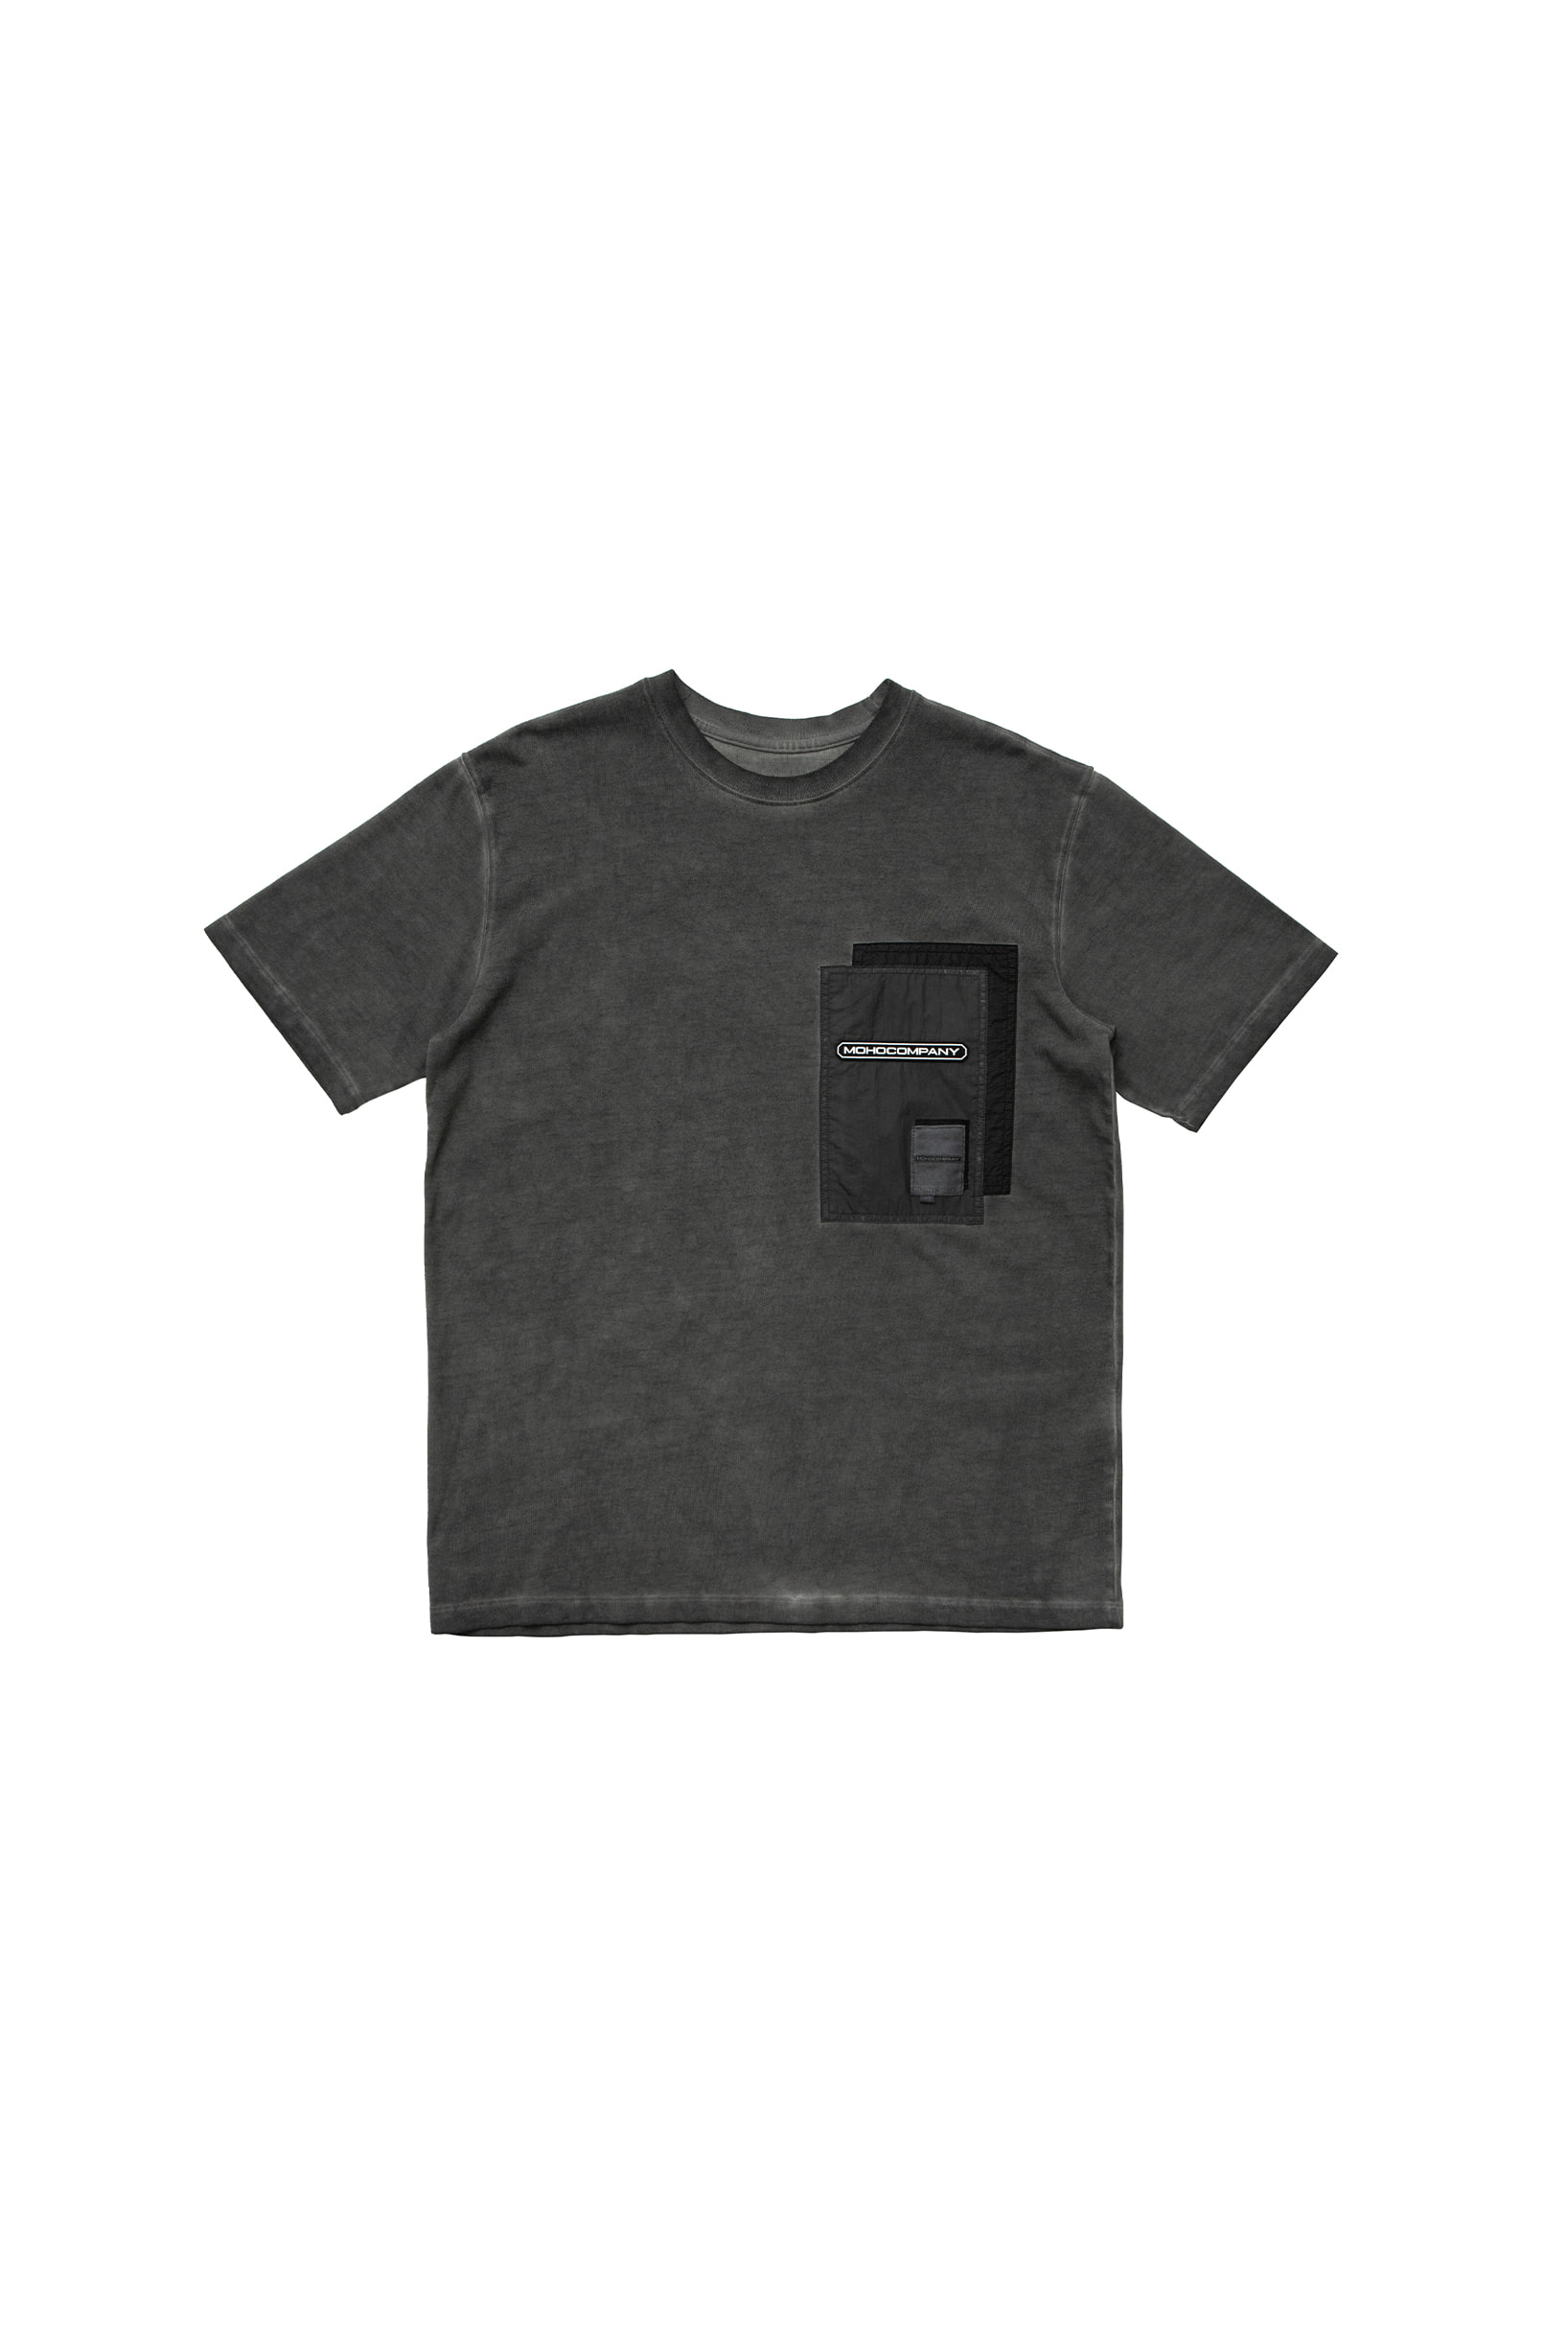 WASHED EFFECT T-SHIRT (CHARCOAL)